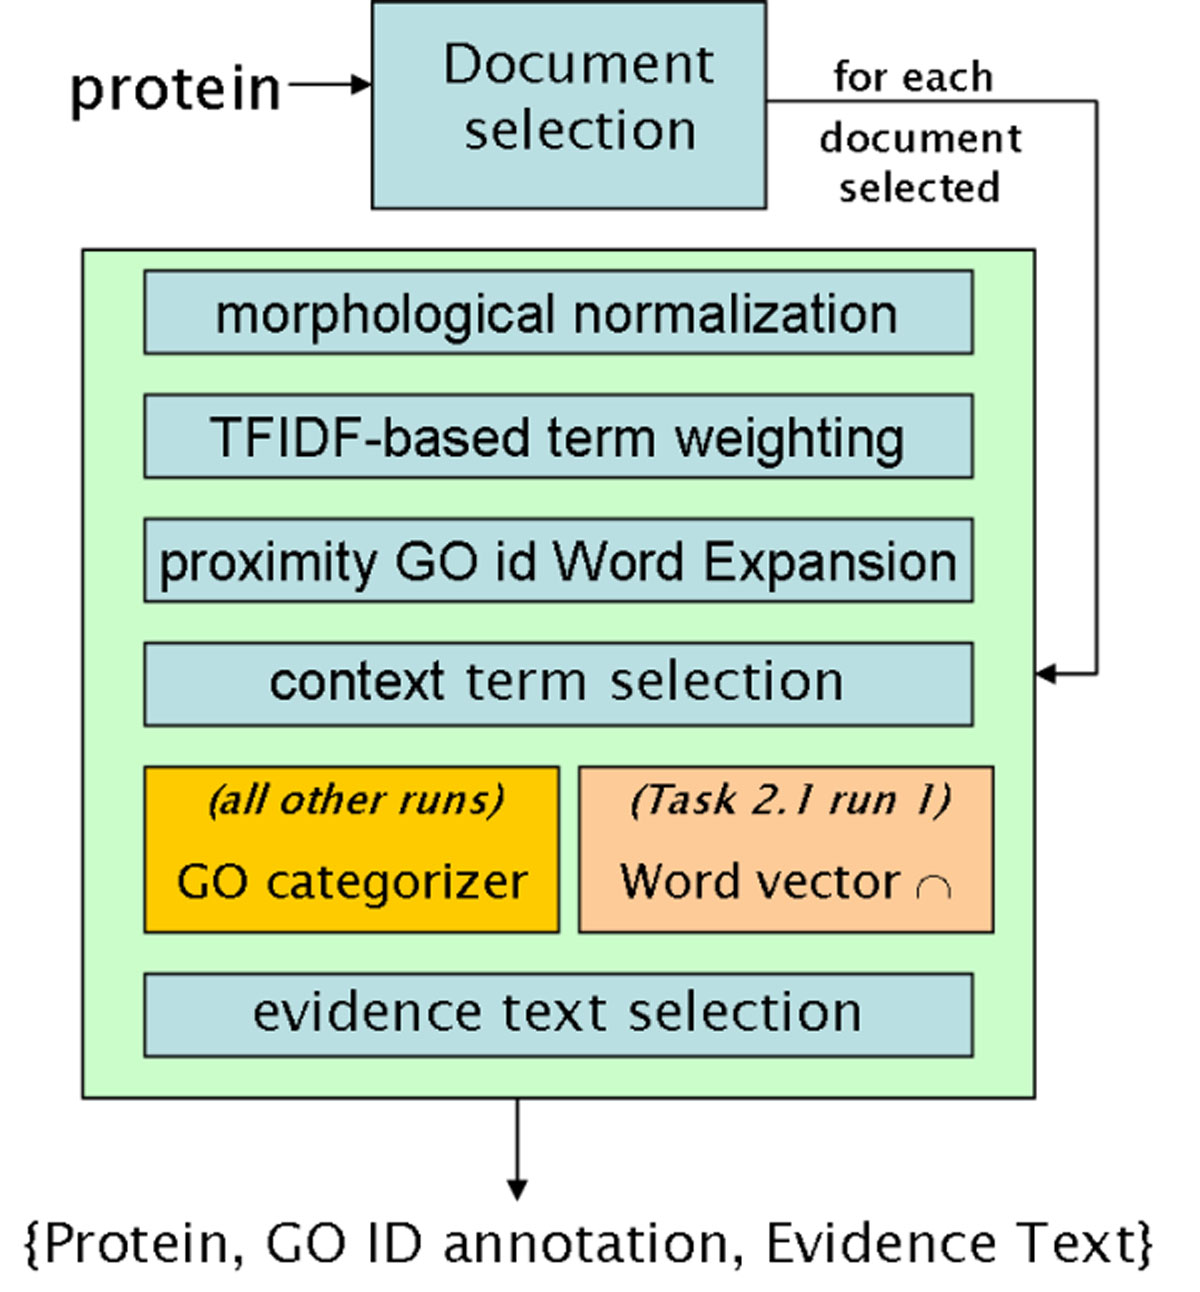 http://static-content.springer.com/image/art%3A10.1186%2F1471-2105-6-S1-S20/MediaObjects/12859_2005_Article_655_Fig4_HTML.jpg